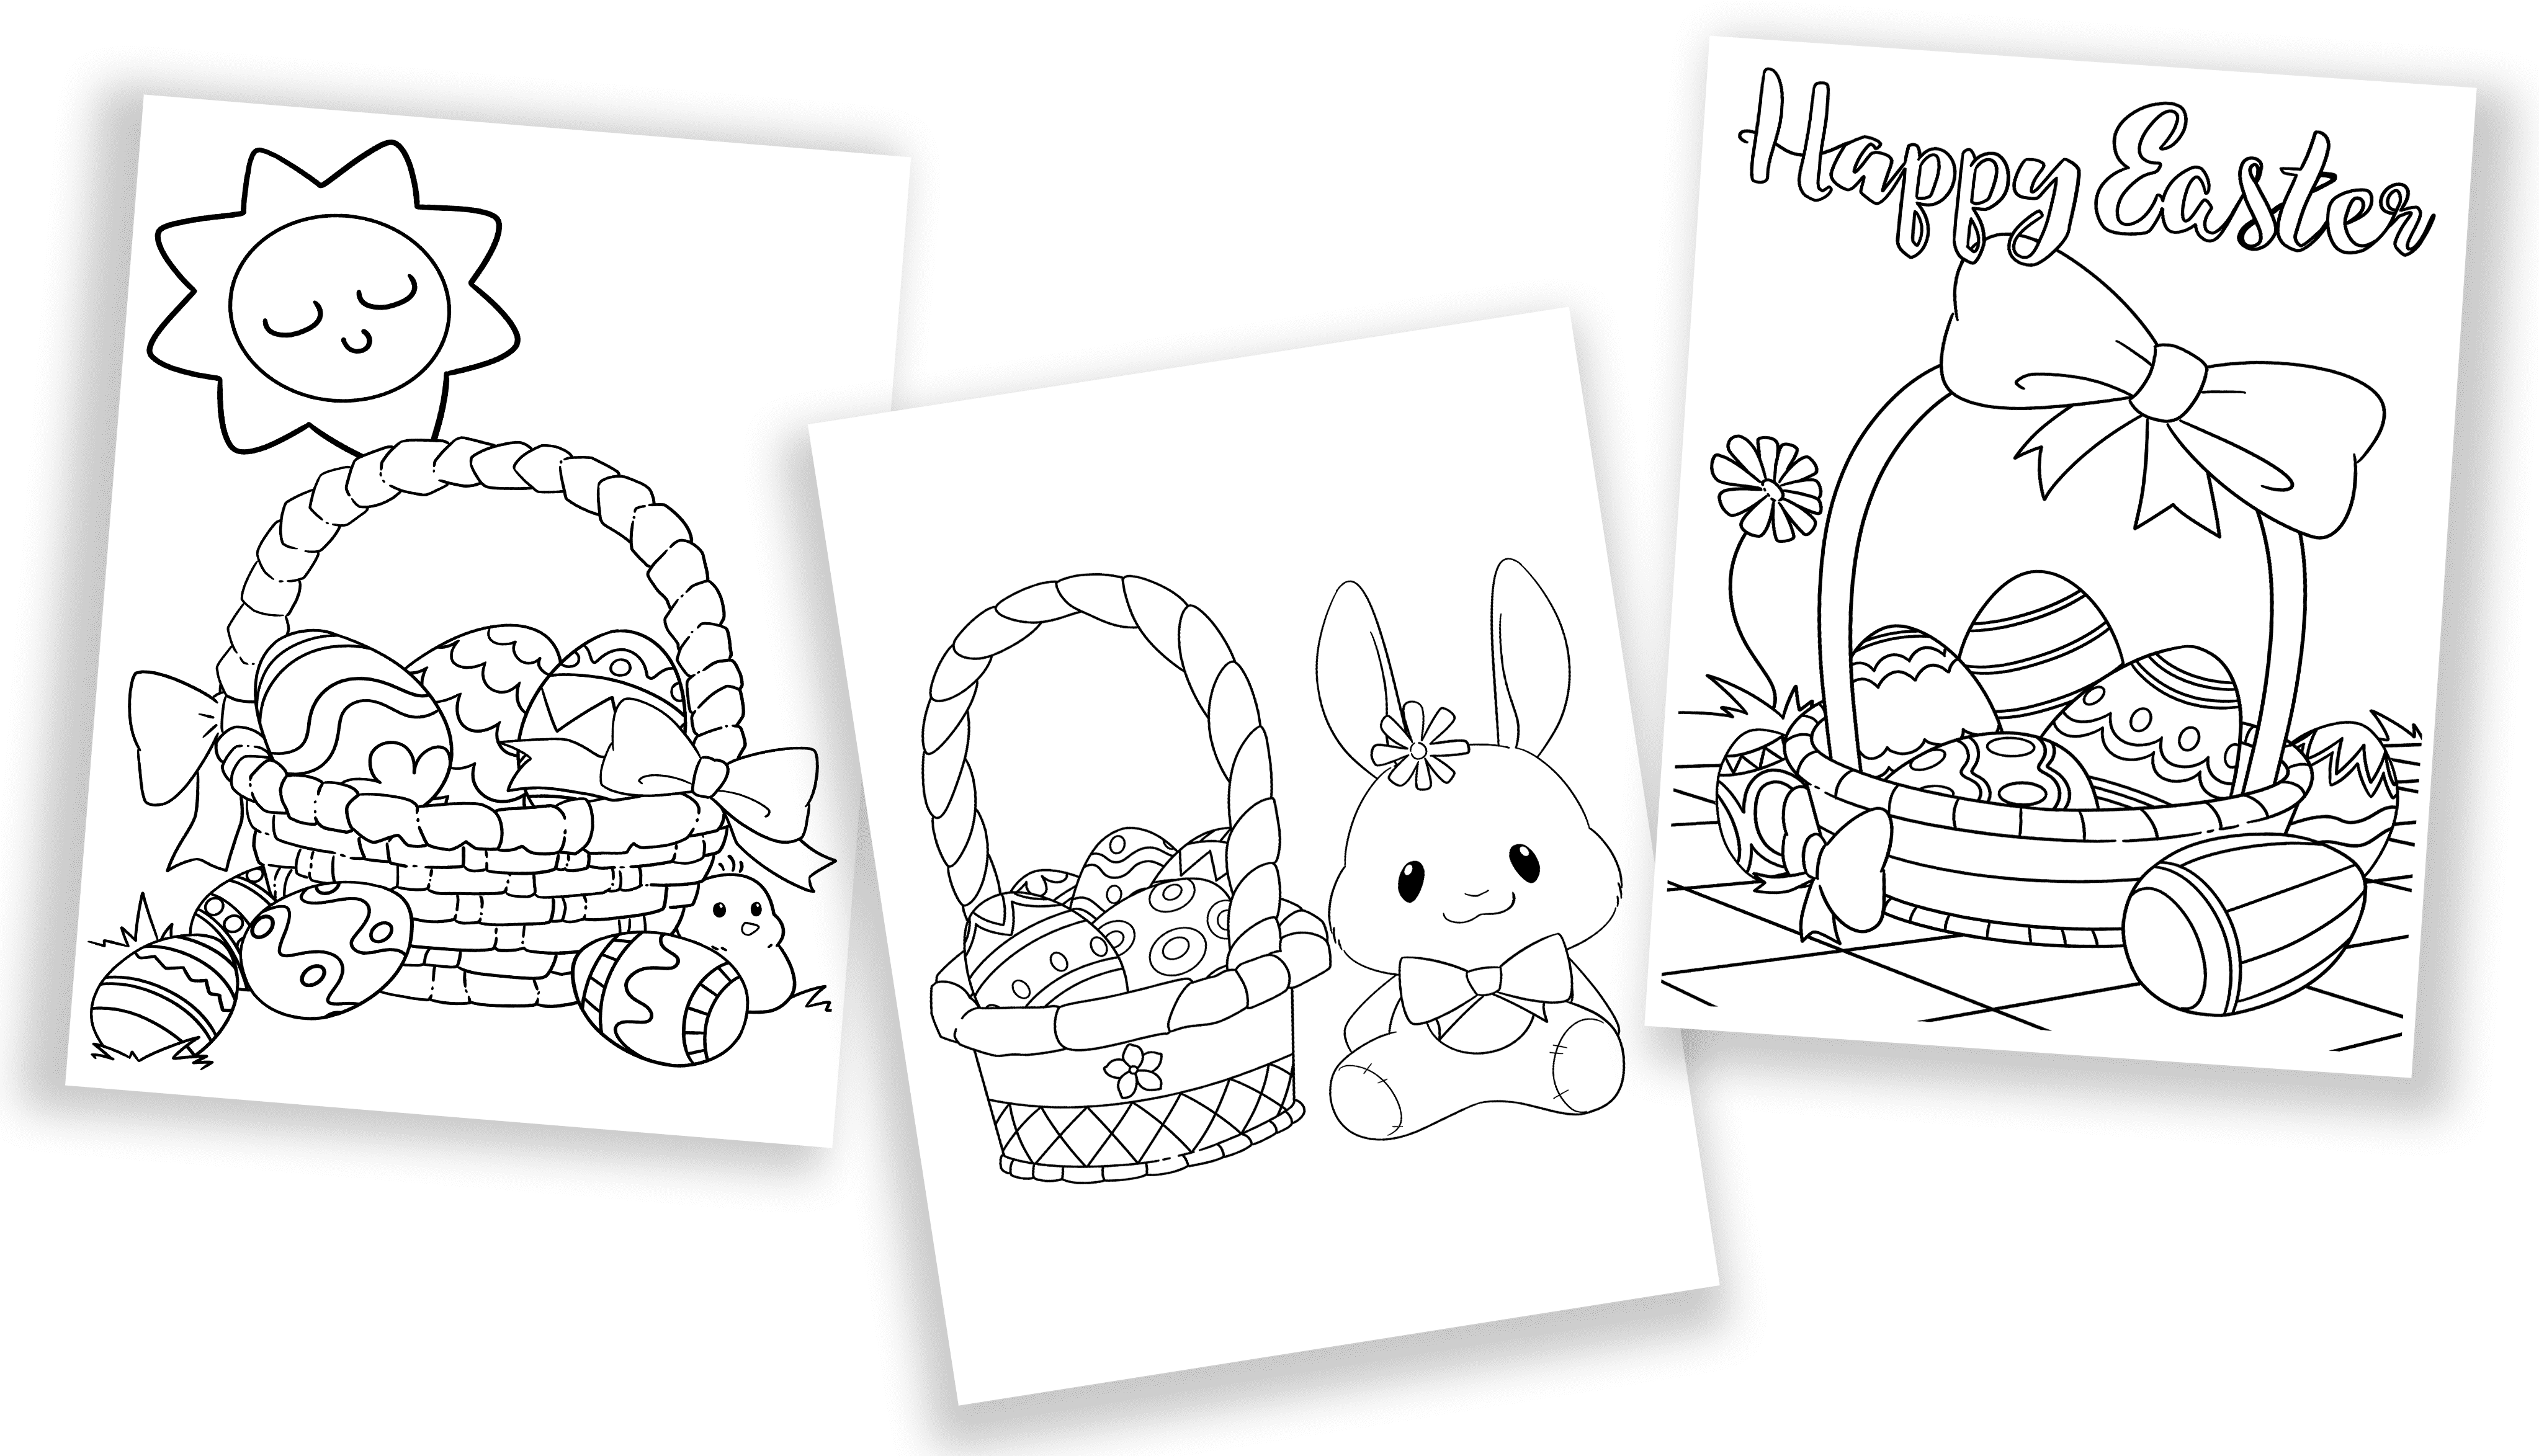 These beautifully designed free Easter basket coloring pages are perfect for kids and adults to color for Easter.